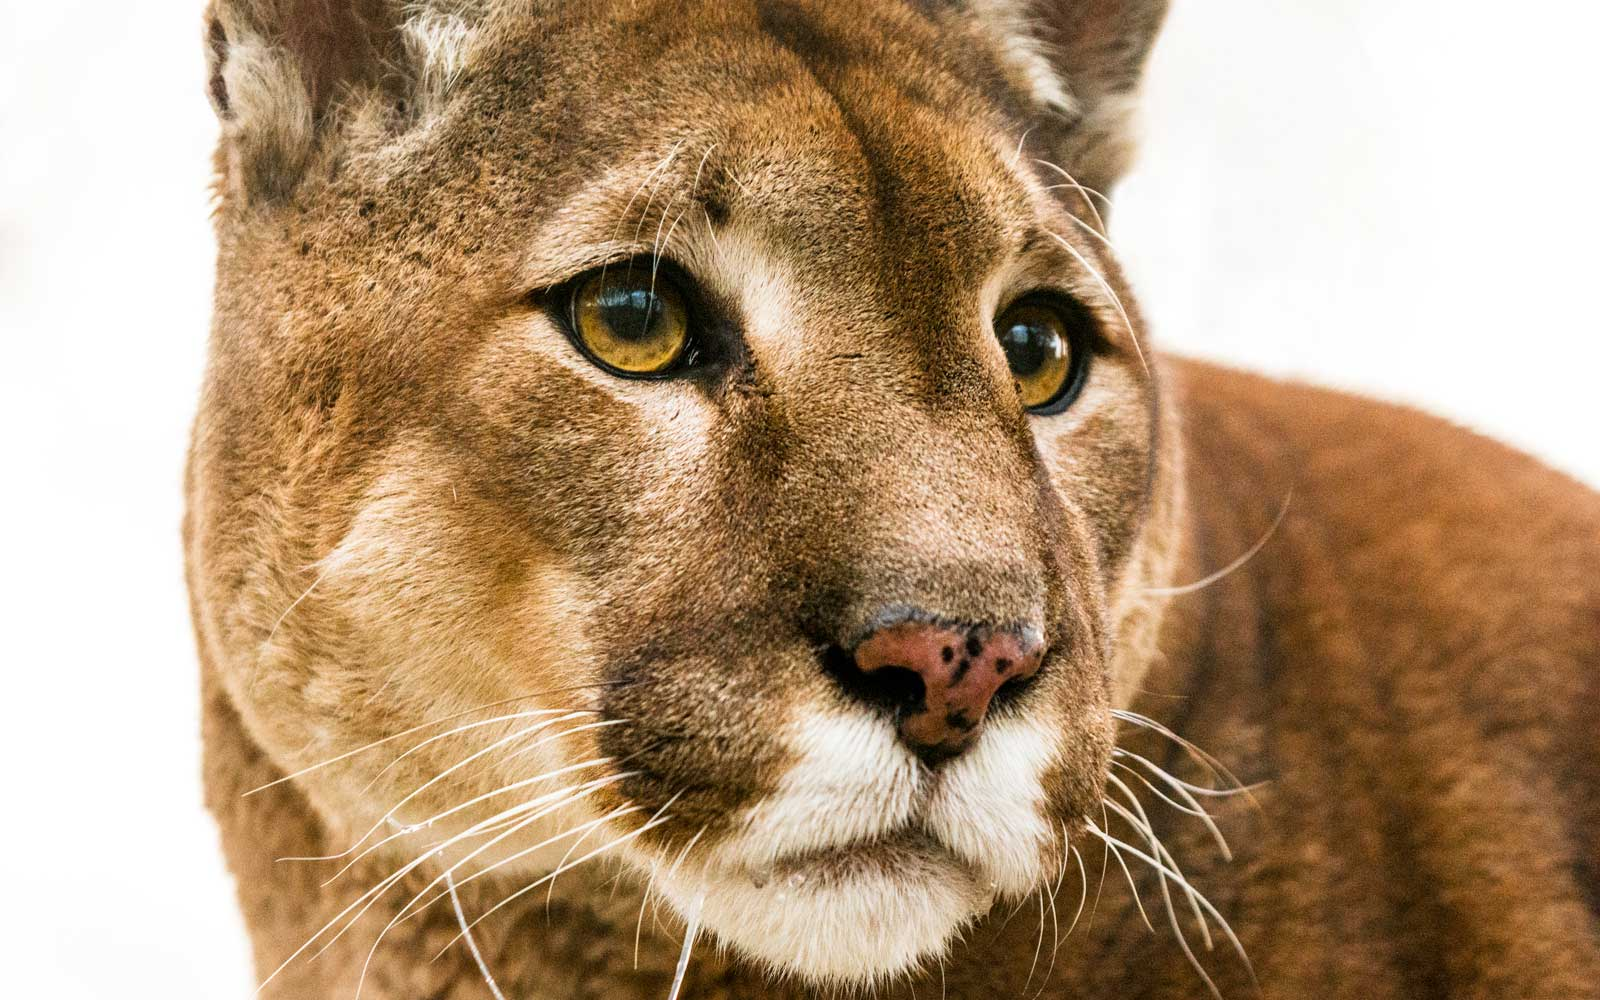 A Mountain Lion Chasing a Neighbor's Cat Ended up Accidentally Locking Itself in This Couple's Bathroom